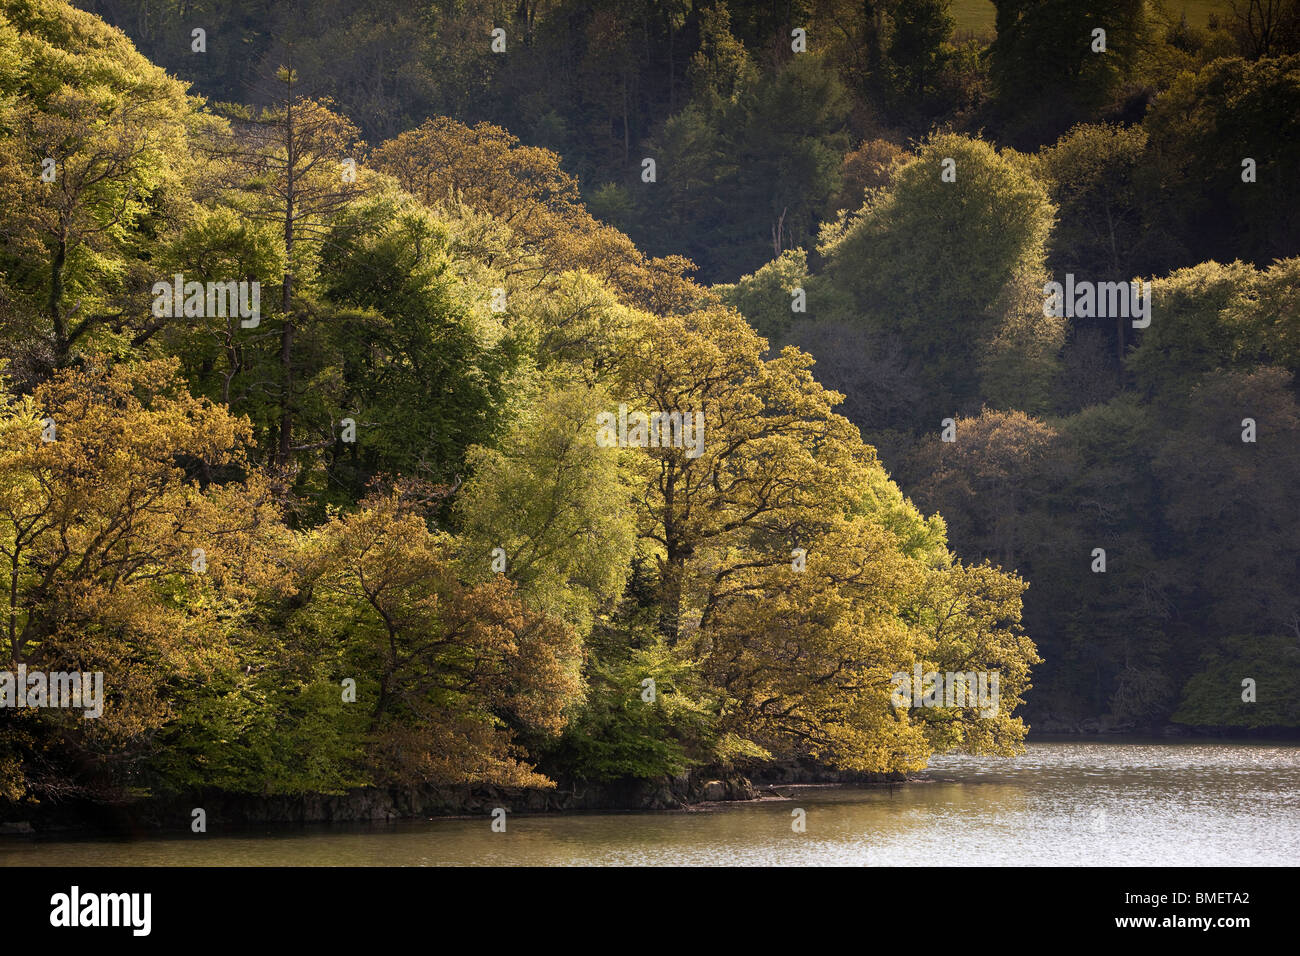 UK, England, Devon, River Dart riverbank trees in new leaf - Stock Image